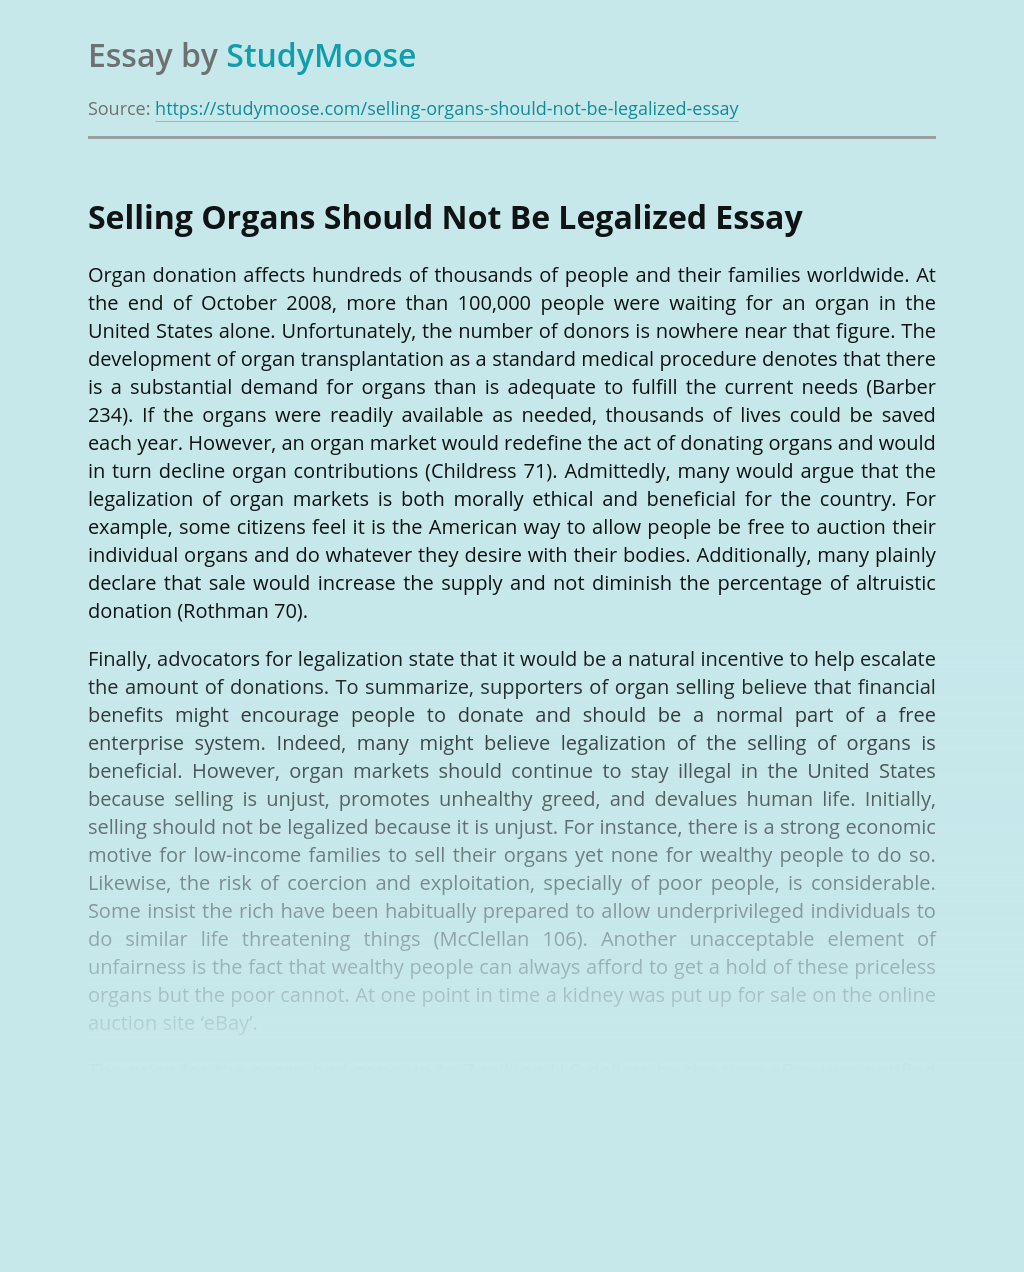 Organ Donation and Selling